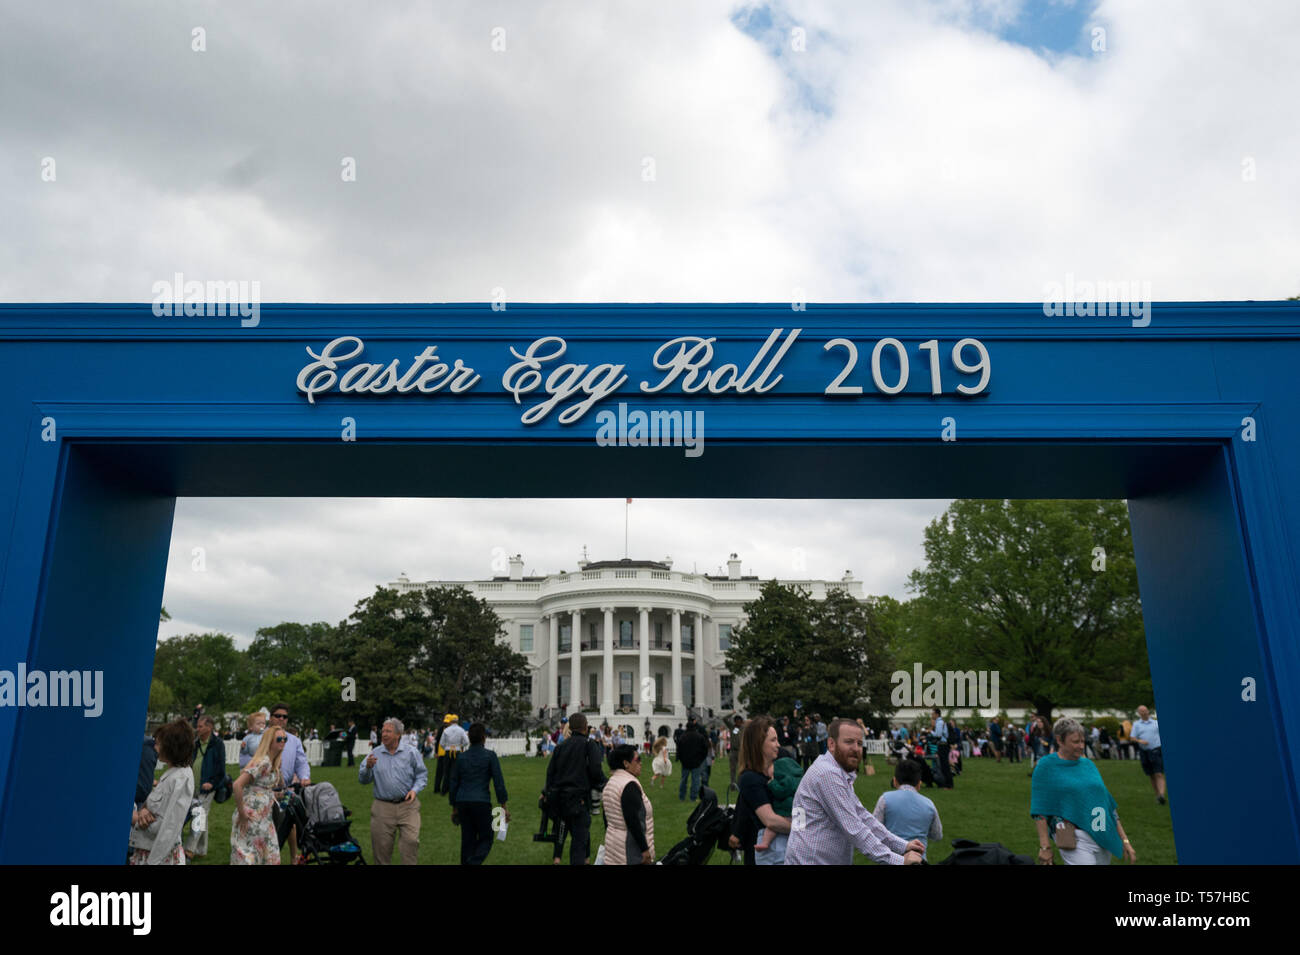 Washington, United States Of America. 22nd Apr, 2019. The White House is seen under a sign for the Easter Egg Roll, in Washington, DC on April 22, 2019. Credit: Kevin Dietsch/Pool via CNP | usage worldwide Credit: dpa/Alamy Live News - Stock Image